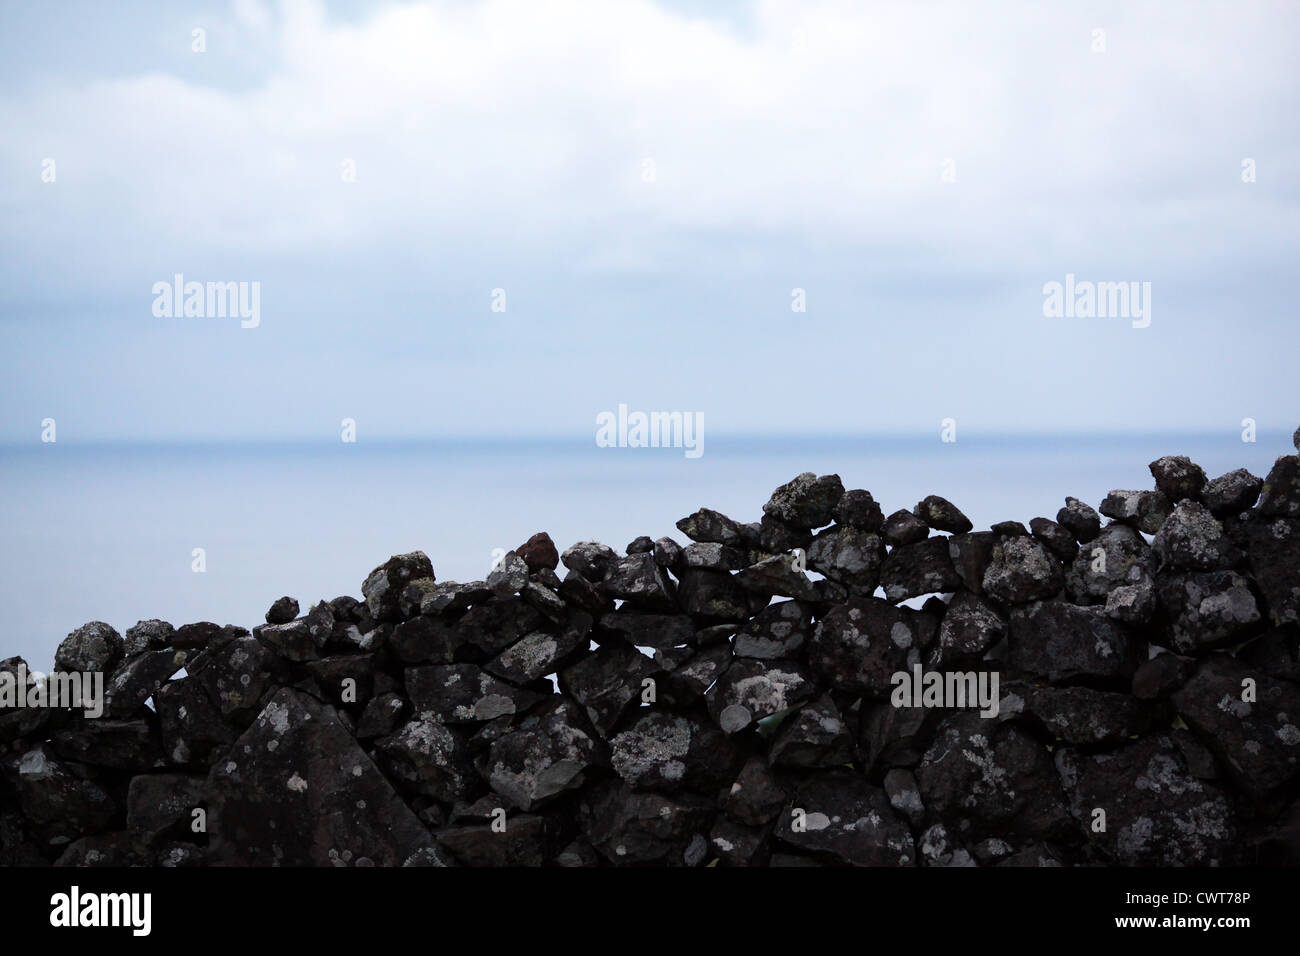 A typical azorean weathered wall separating agricultural terrains made of basalt rocks piled up on each other - Stock Image